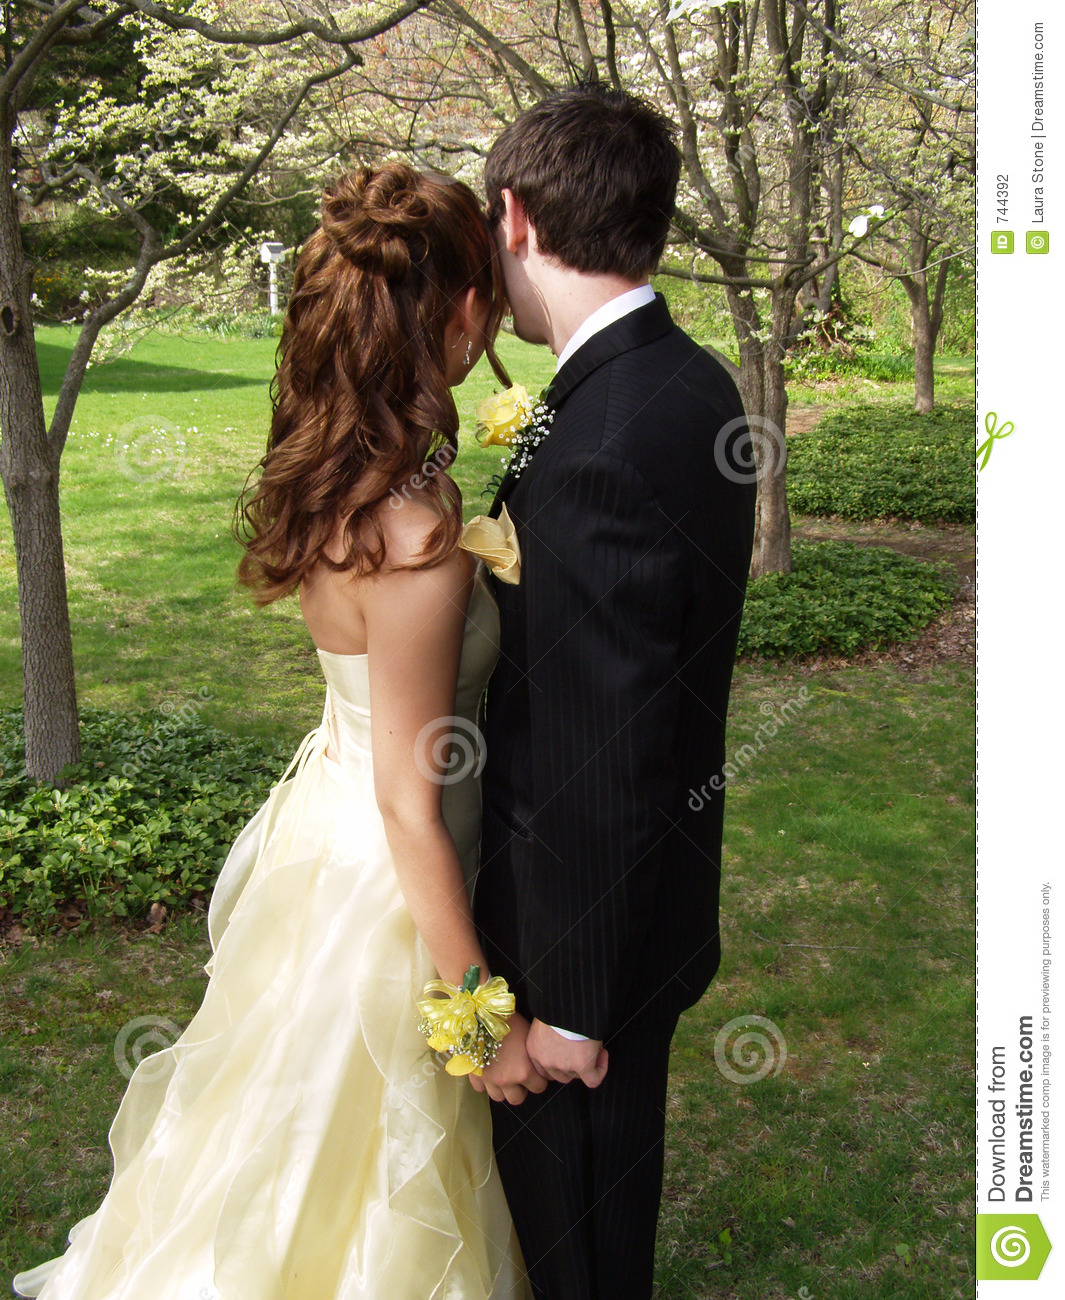 how to find a prom date outside of school